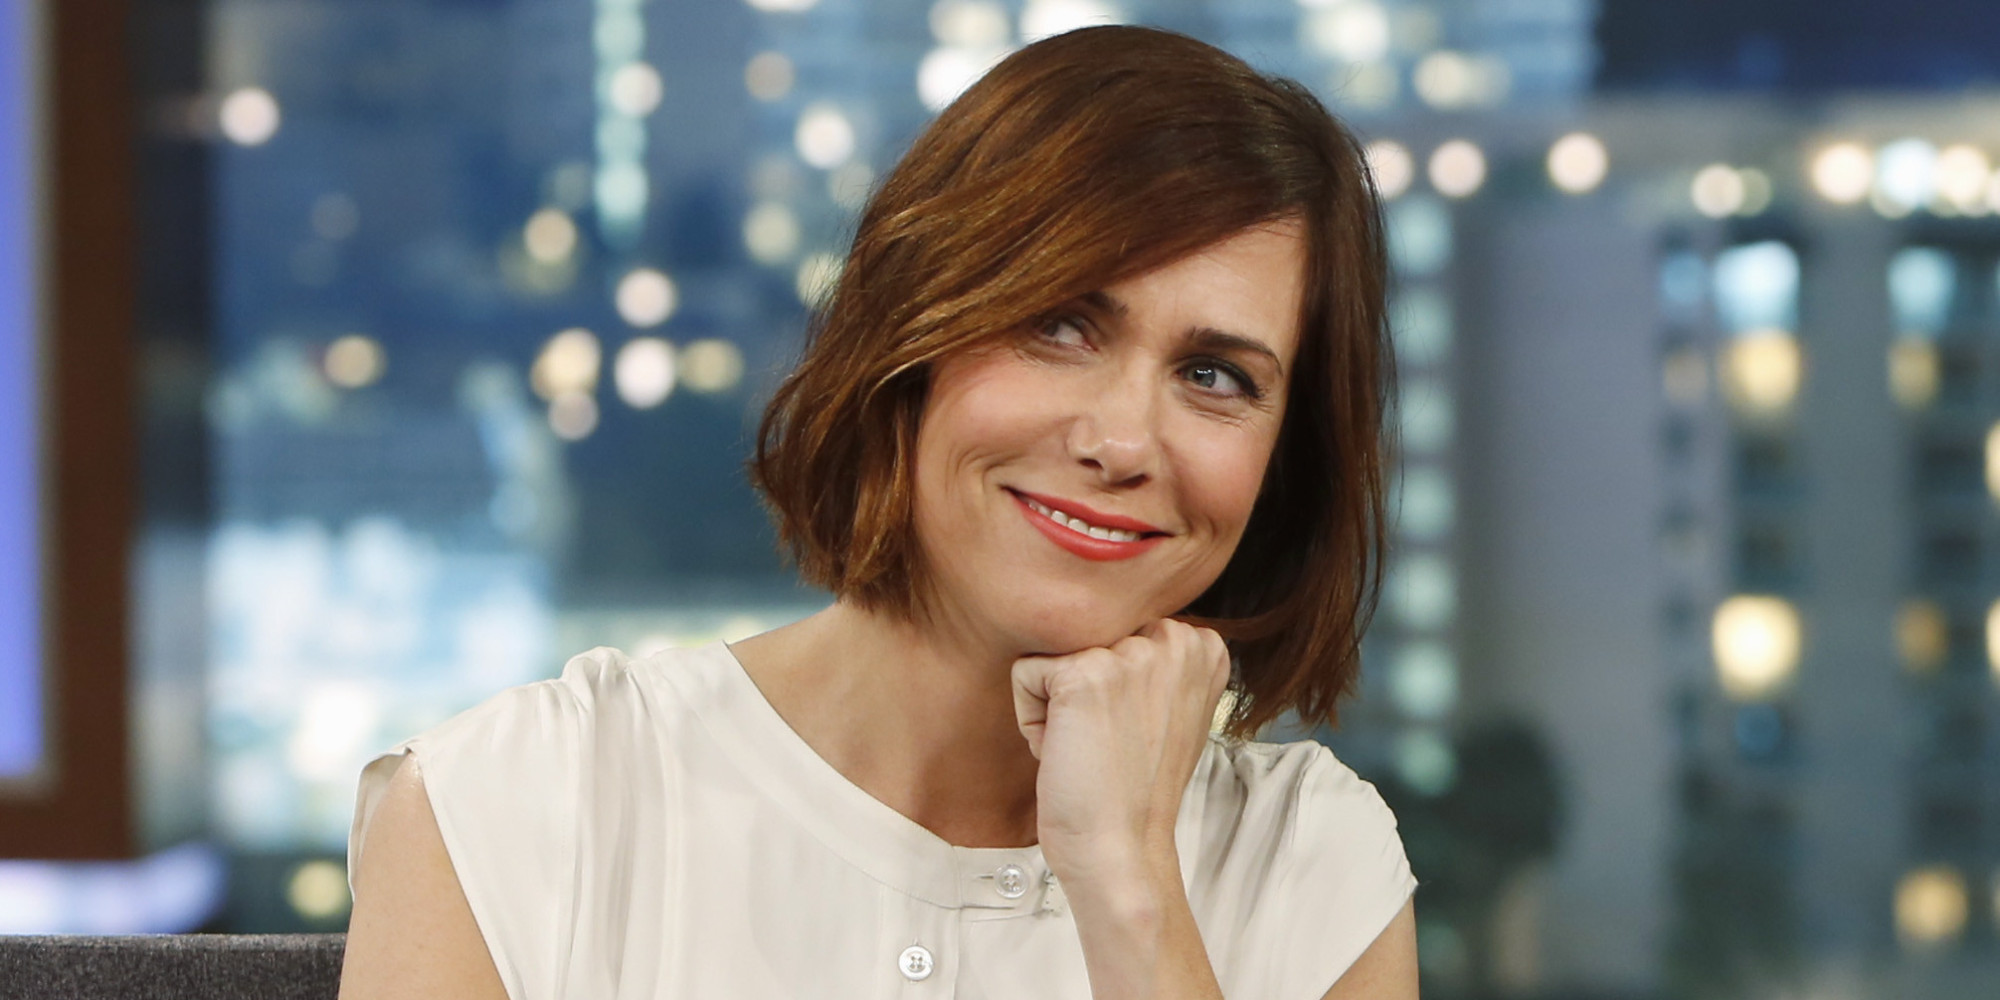 kristen wiig vkkristen wiig фото, kristen wiig space oddity, kristen wiig snl, kristen wiig masterminds, kristen wiig 2016, kristen wiig gif, kristen wiig 2017, kristen wiig movies, kristen wiig autograph, kristen wiig imdb, kristen wiig vk, kristen wiig chandelier, kristen wiig show, kristen wiig mbti, kristen wiig vegetarian, kristen wiig tattoos, kristen wiig listal, kristen wiig hayes hargrove, kristen wiig the view, kristen wiig guitar